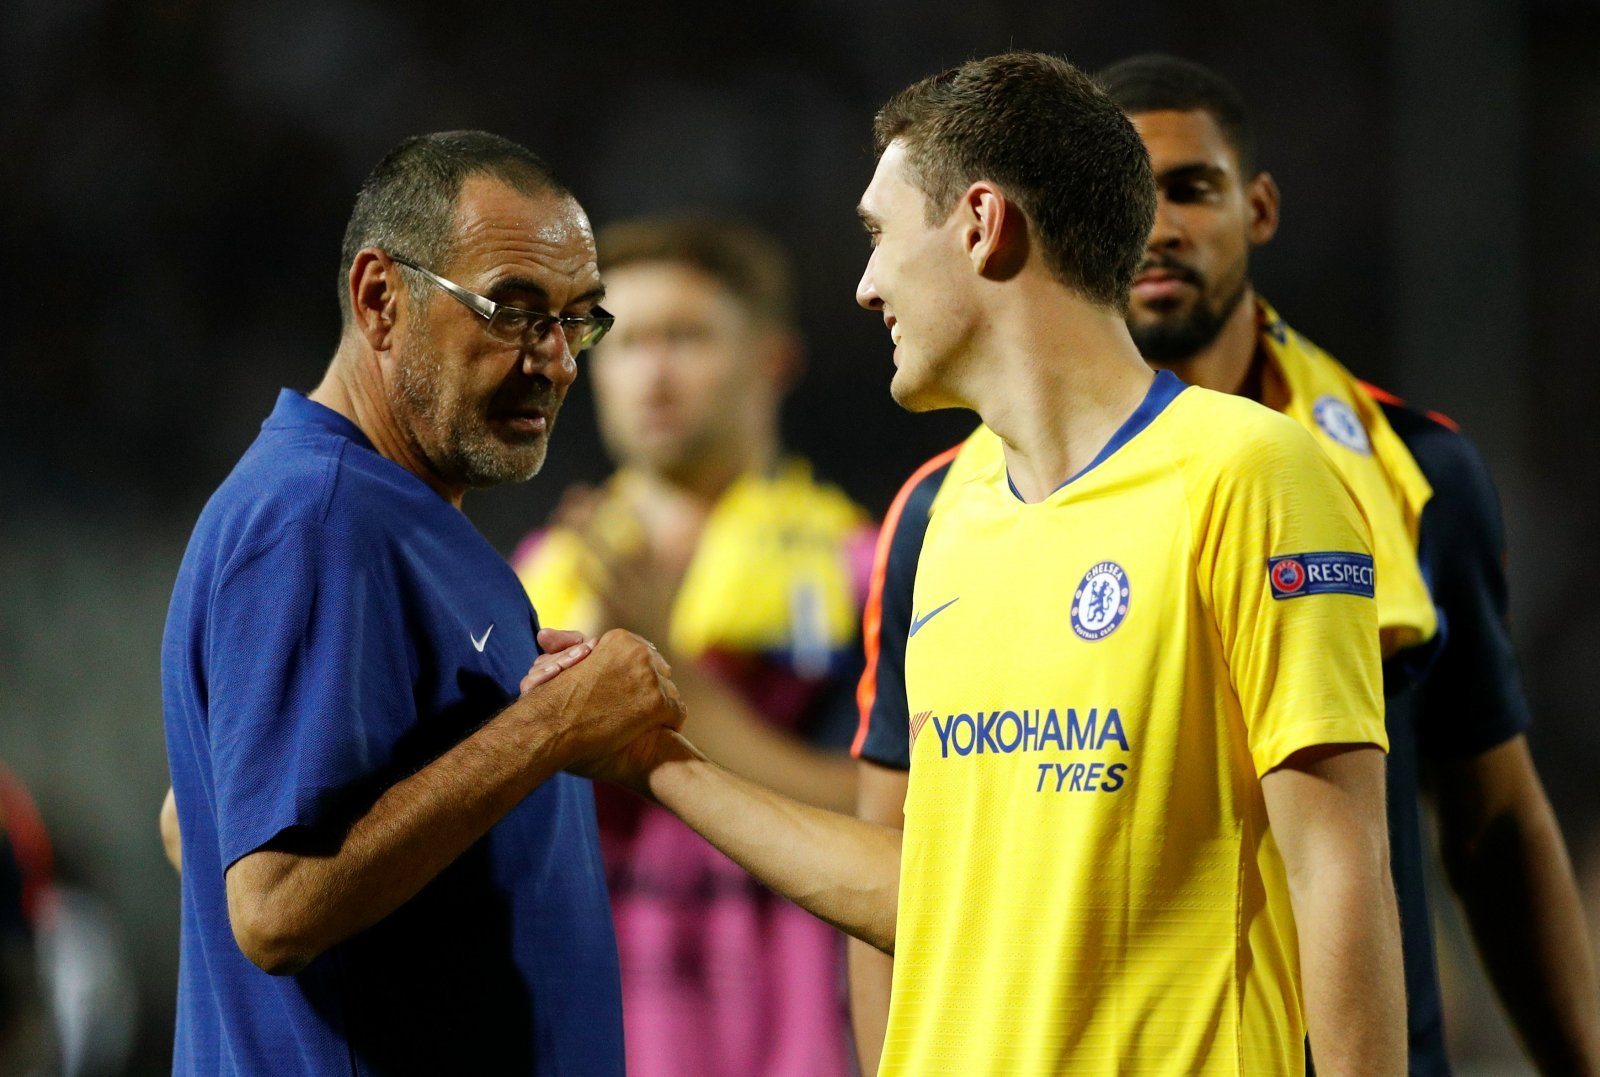 Chelsea fans aren't happy with Maurizio Sarri after Andreas Christensen comments